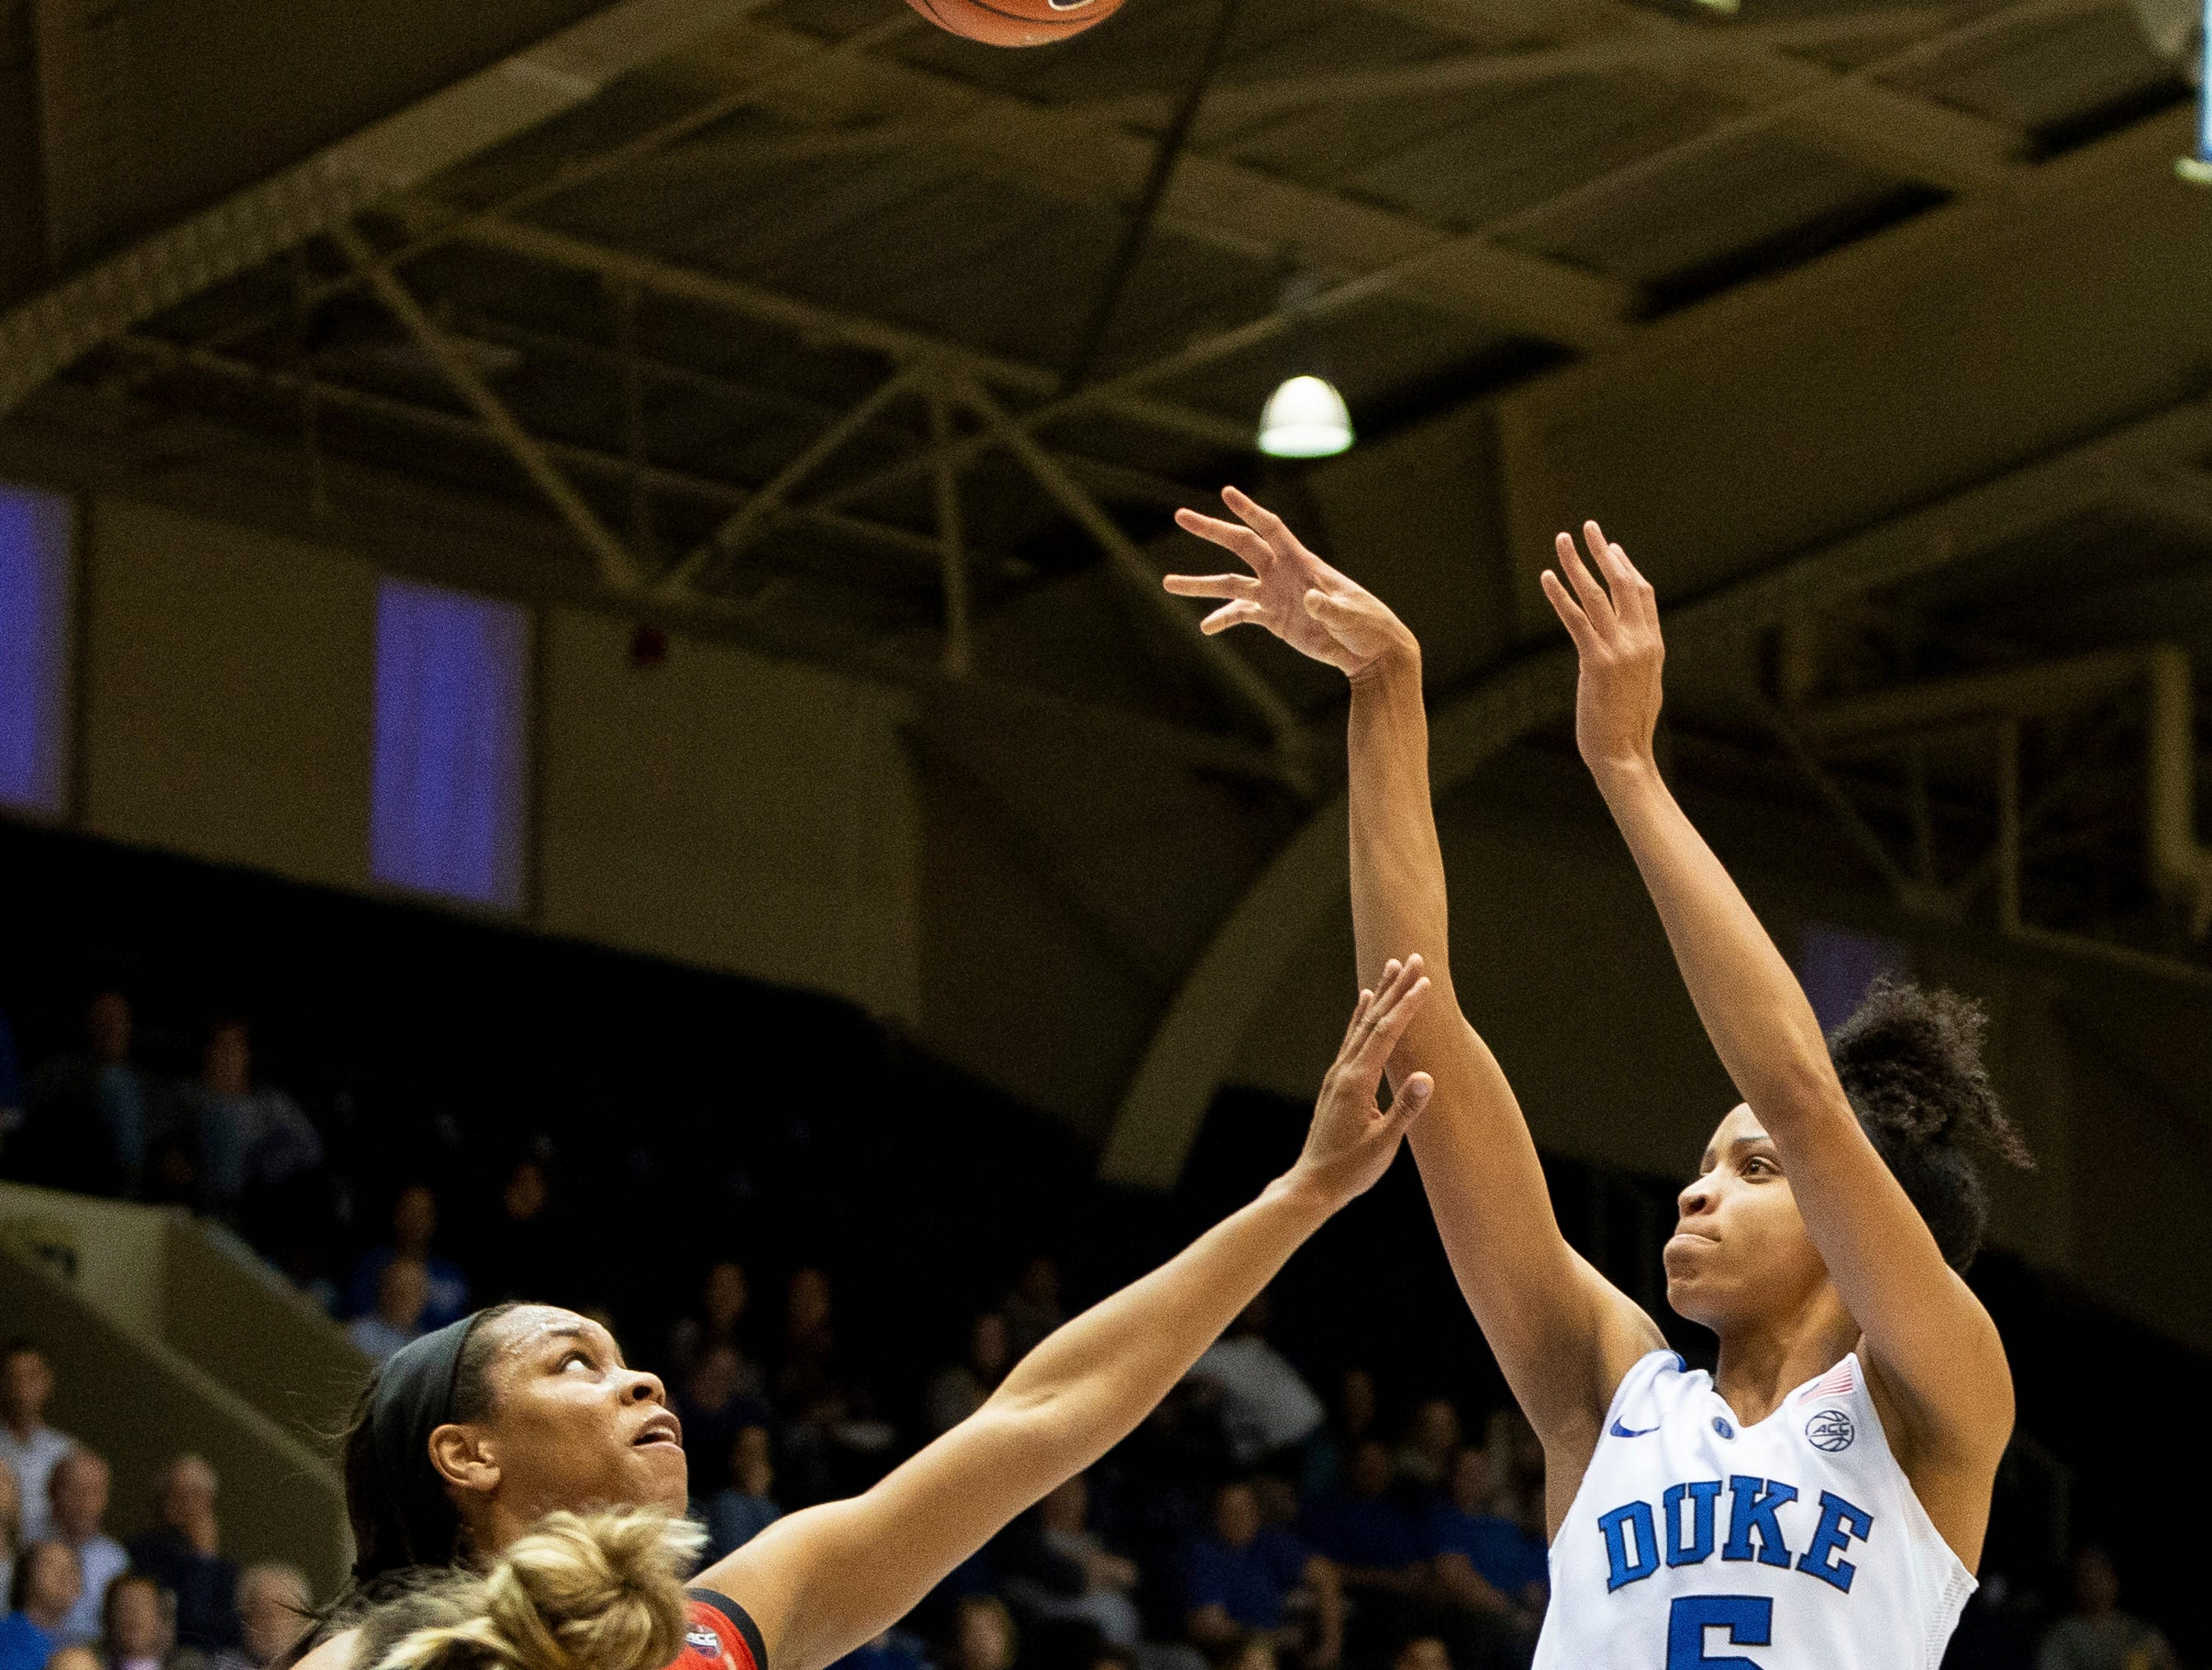 Duke's Leaonna Odom, right, attempts a shot over Louisville's Asia Durr, left, during the second half of an NCAA college basketball game in Durham, N.C., Sunday, Jan. 6, 2019.